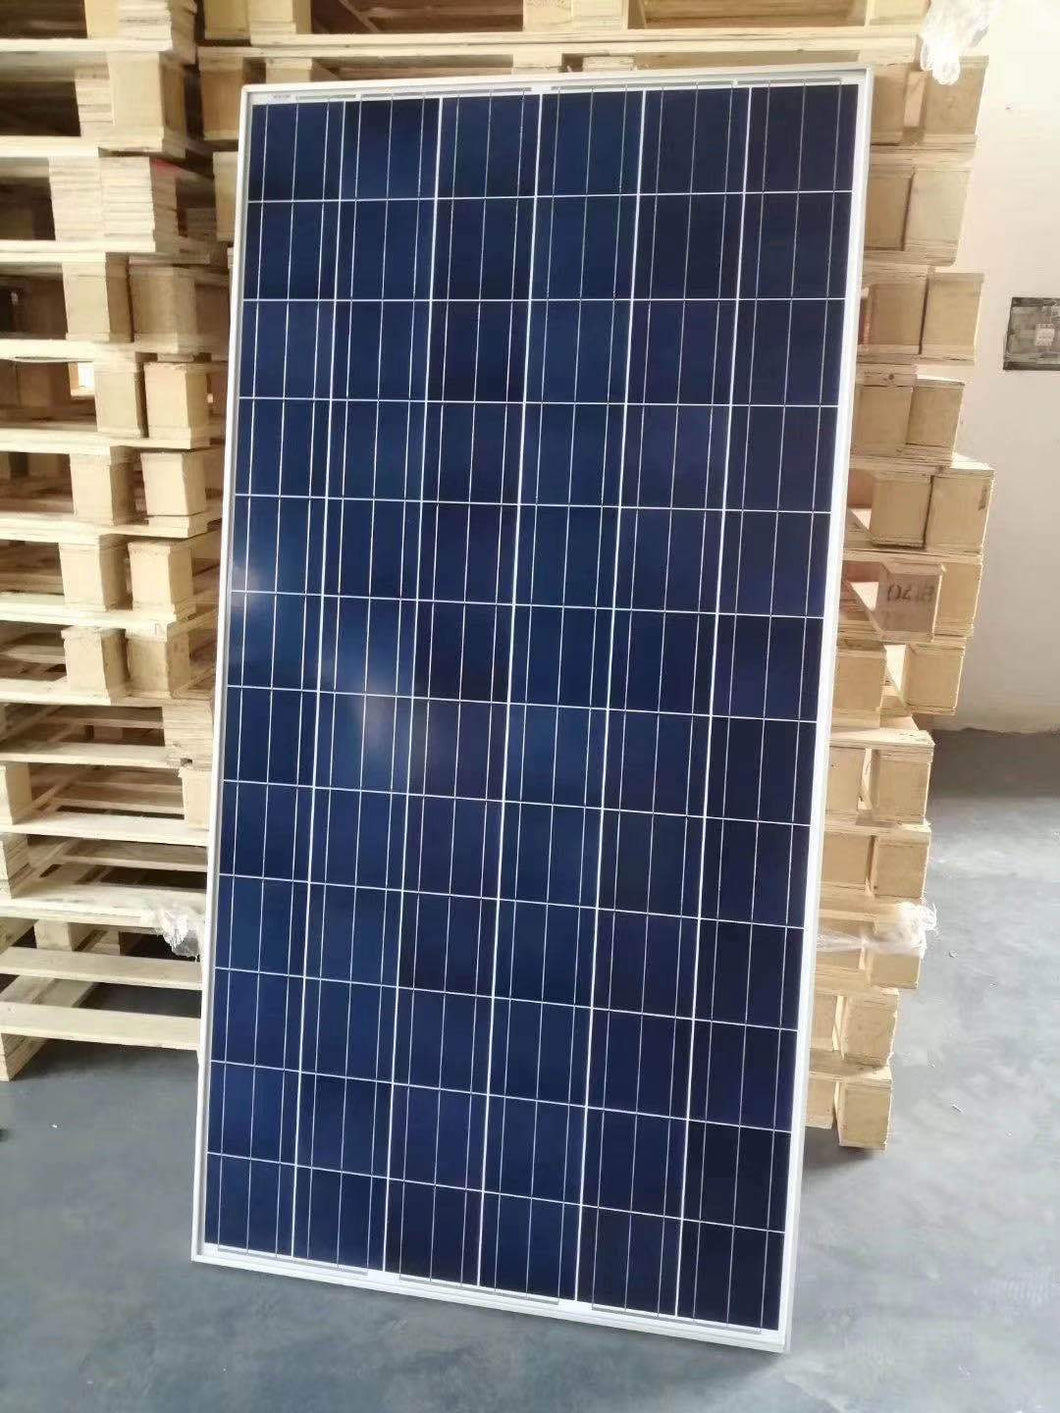 (Old/Used Panel) Solar Panel Stock New Arrival in Warehouse